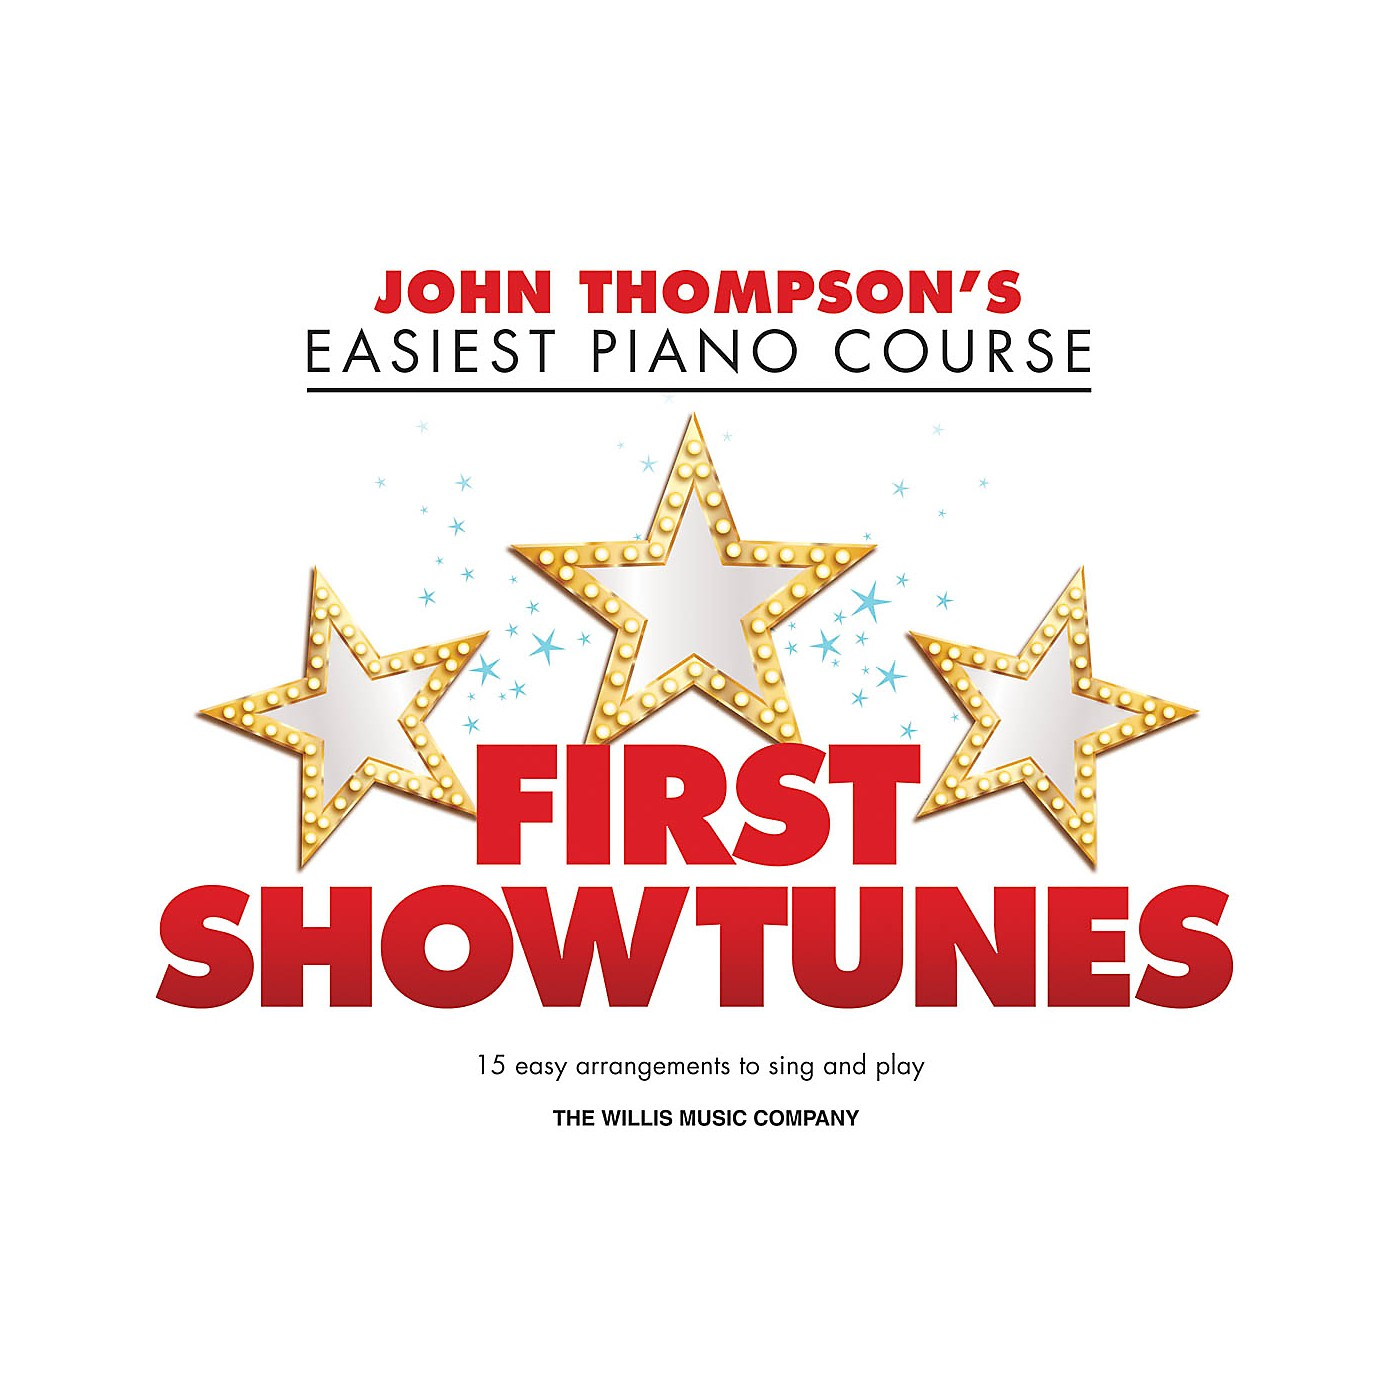 Willis Music First Showtunes (John Thompson's Easiest Piano Course) Easy Piano Songbook thumbnail